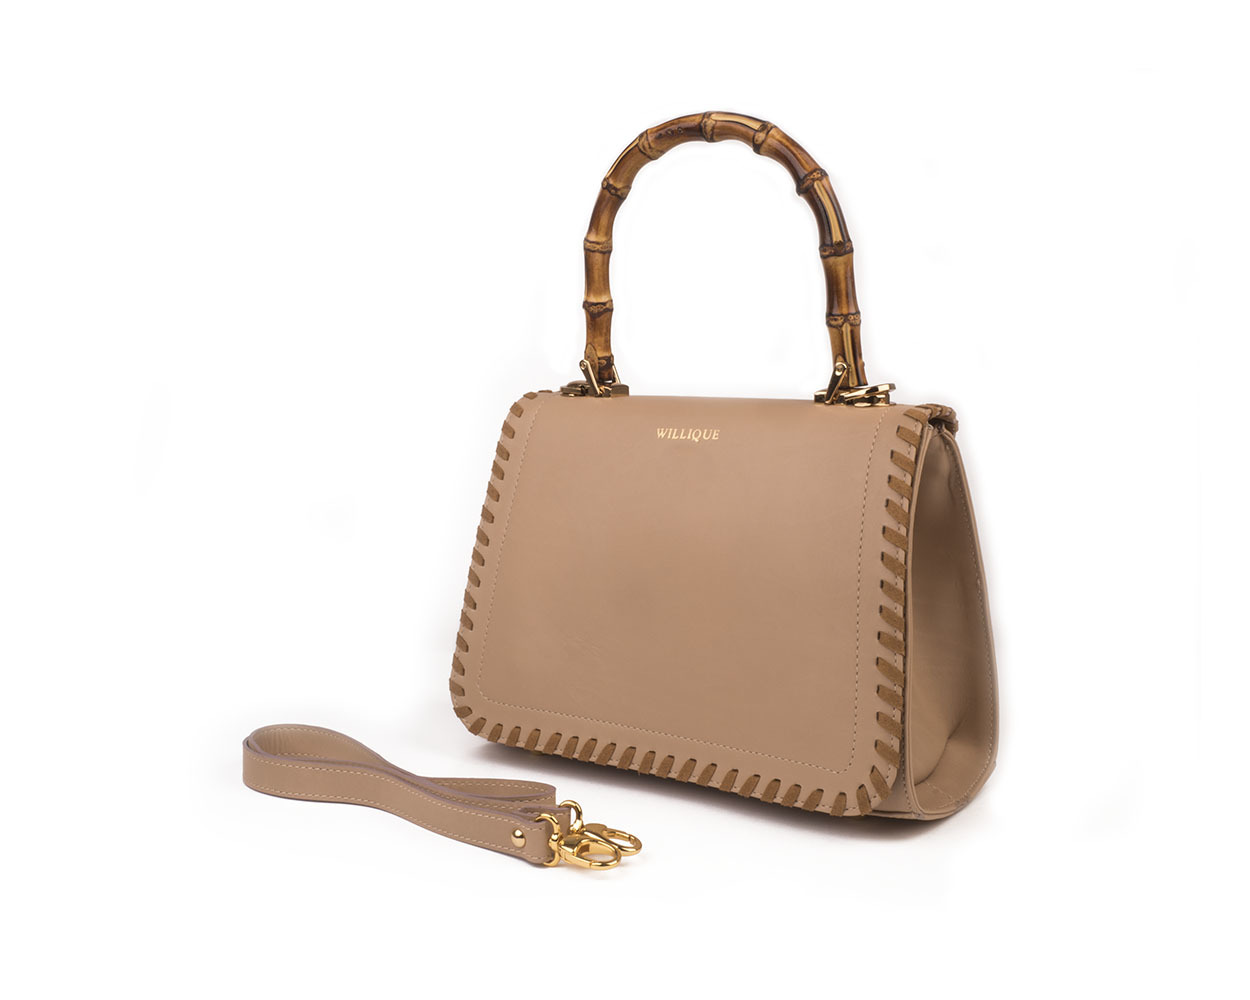 Willique handbag cream side web